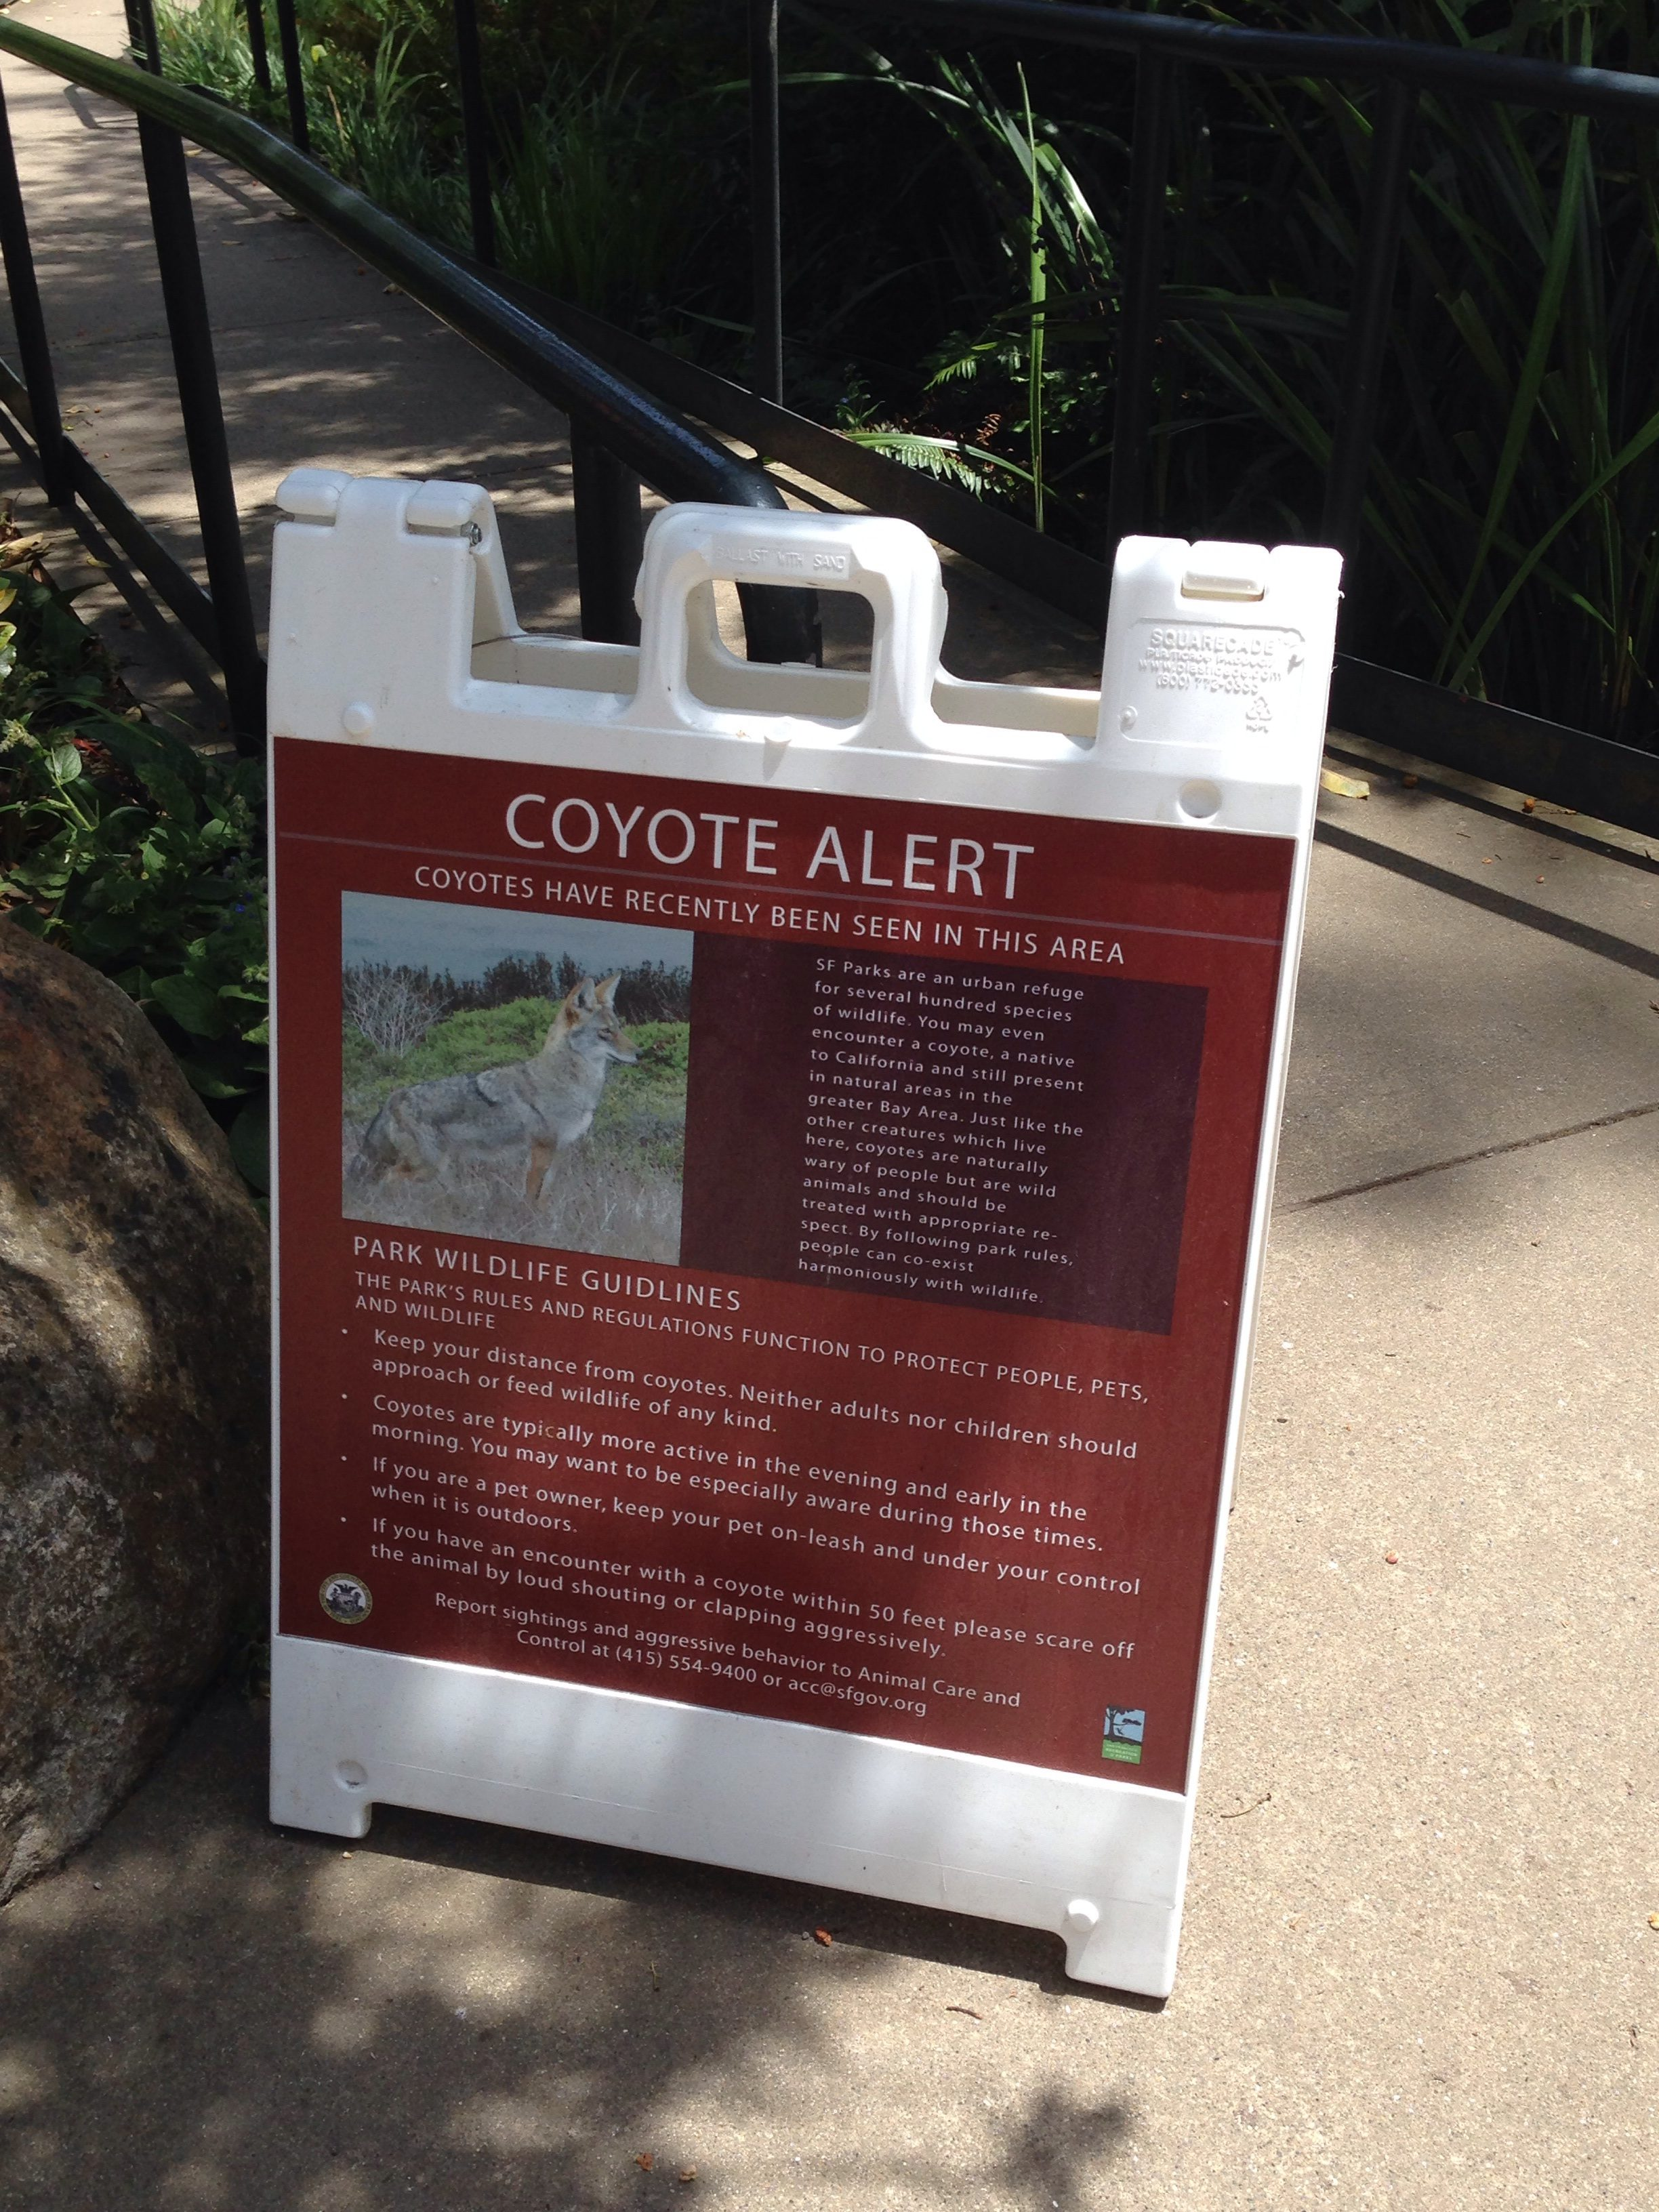 coyote alert sign on a sidewalk in the park